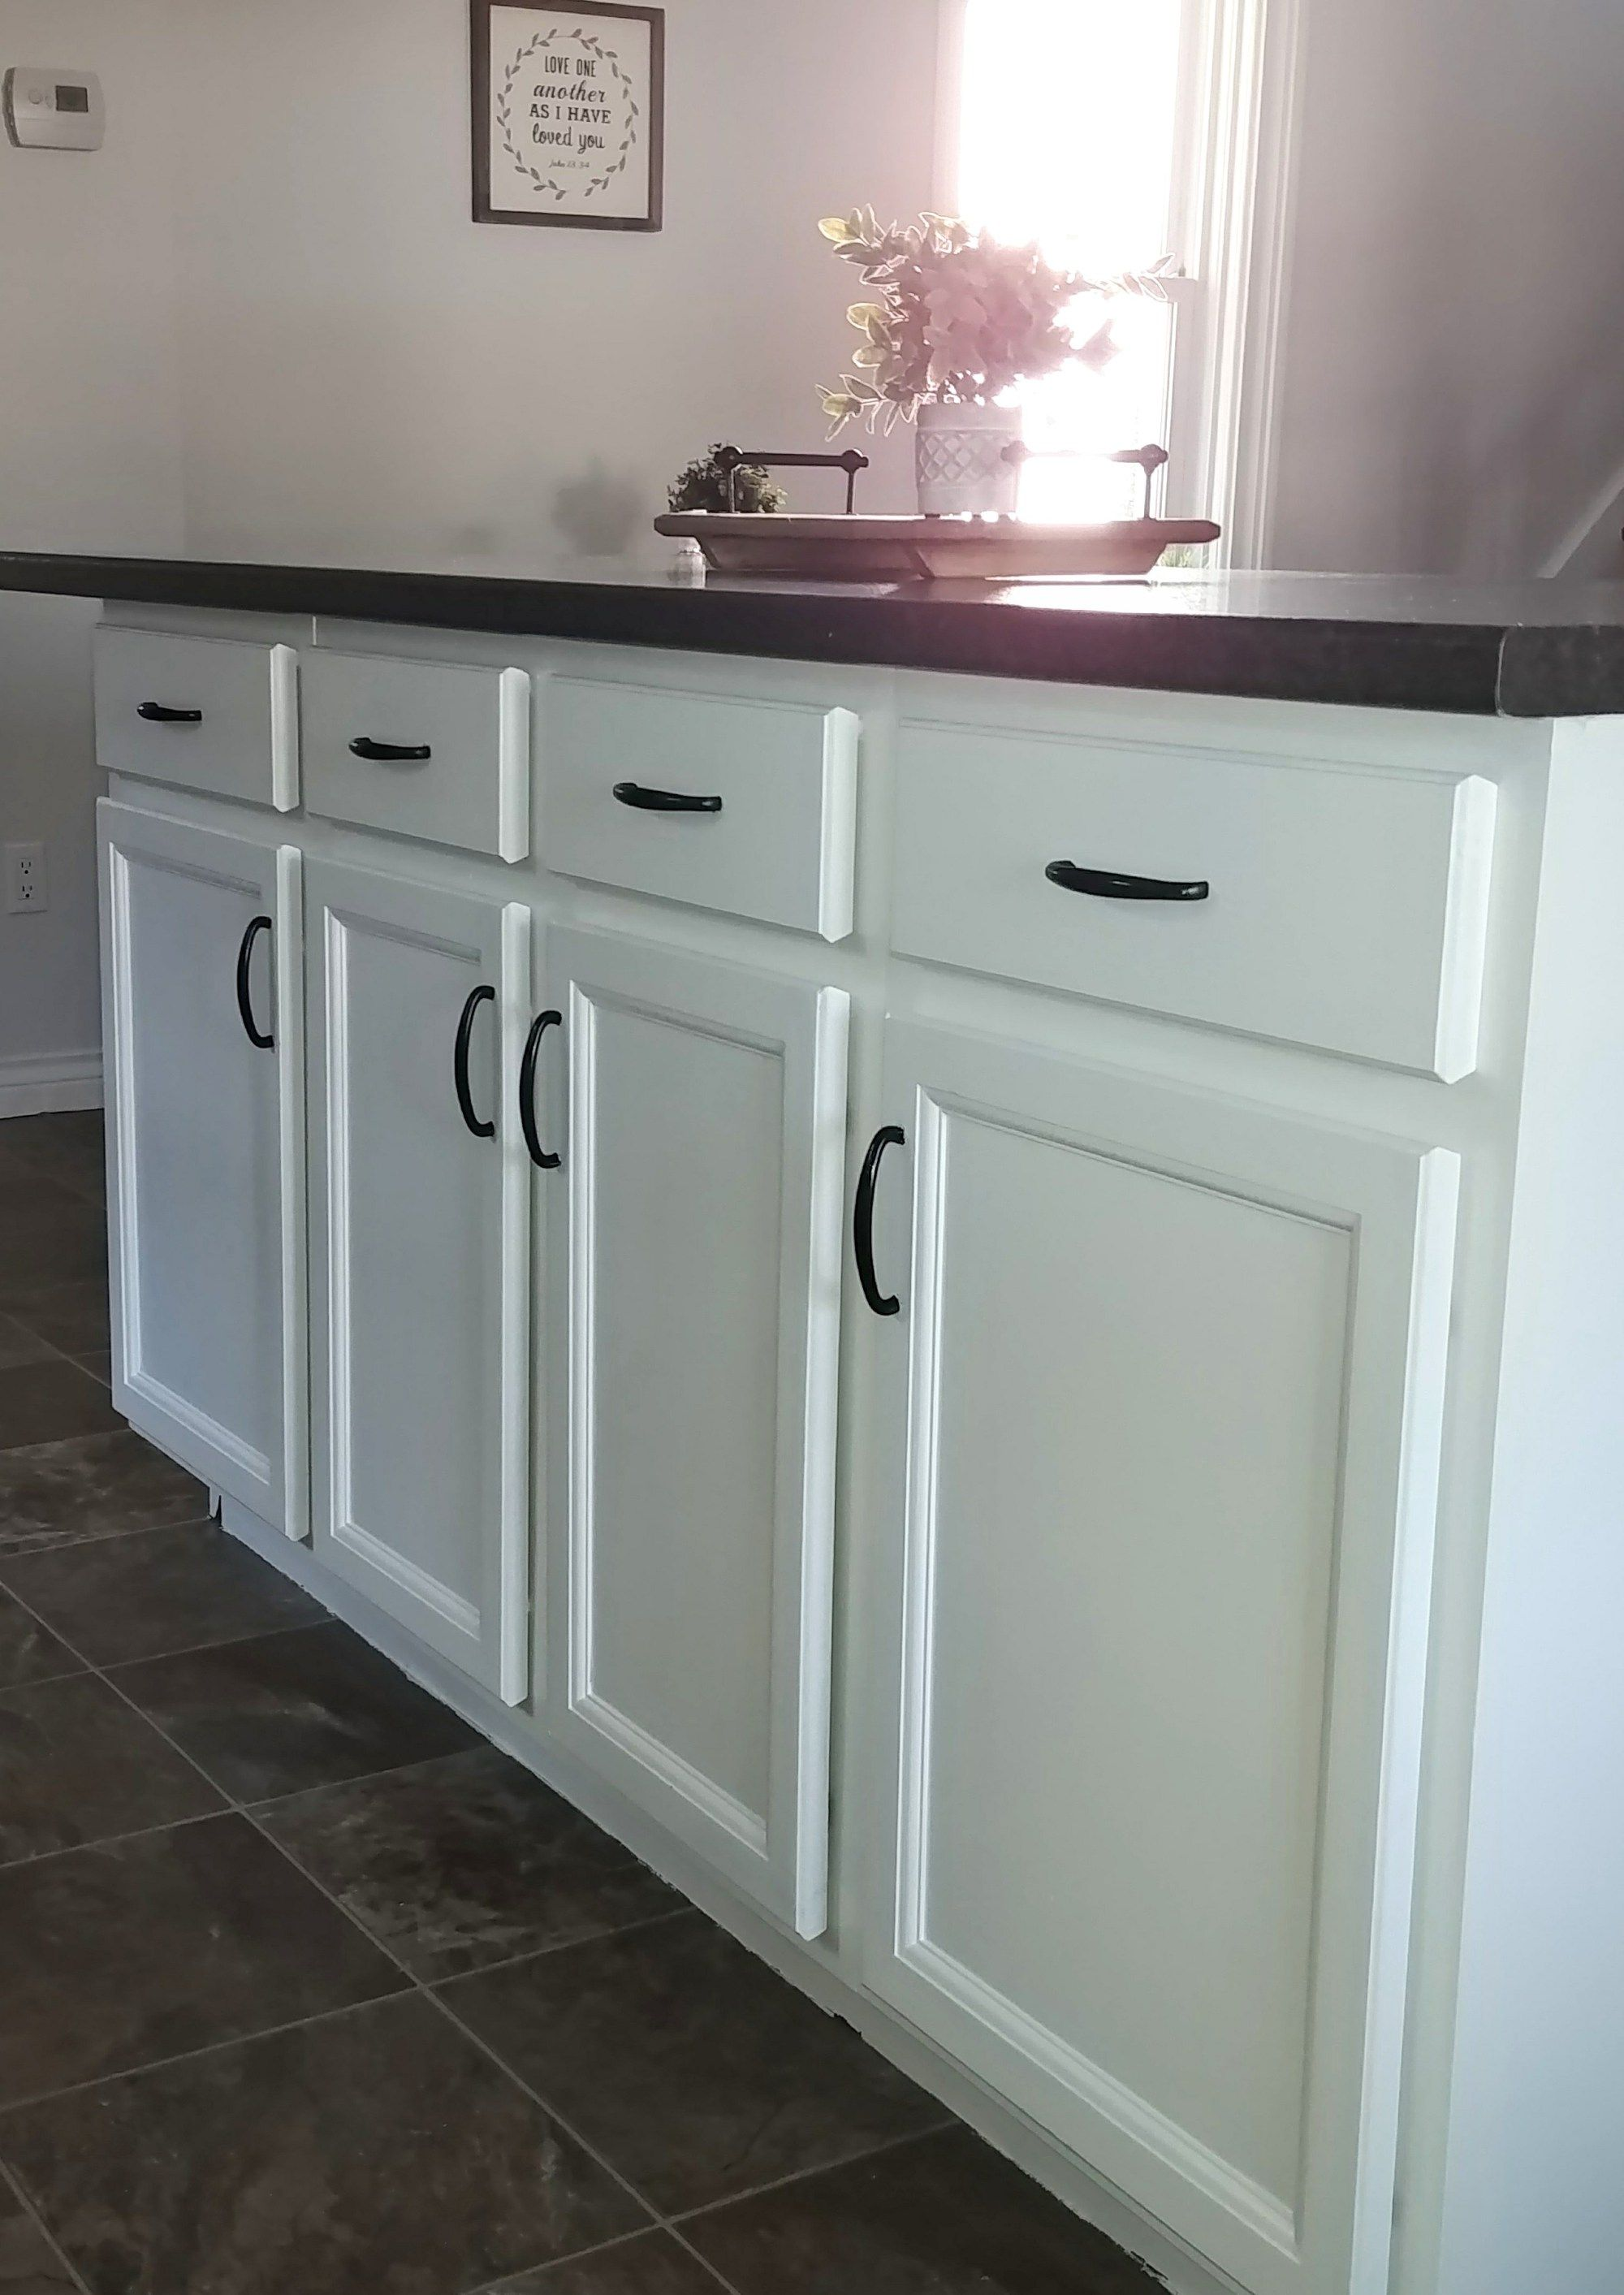 paint your kitchen cabinets no sanding needed kitchen cabinets painting kitchen cabinets on kitchen cabinets no doors id=58385